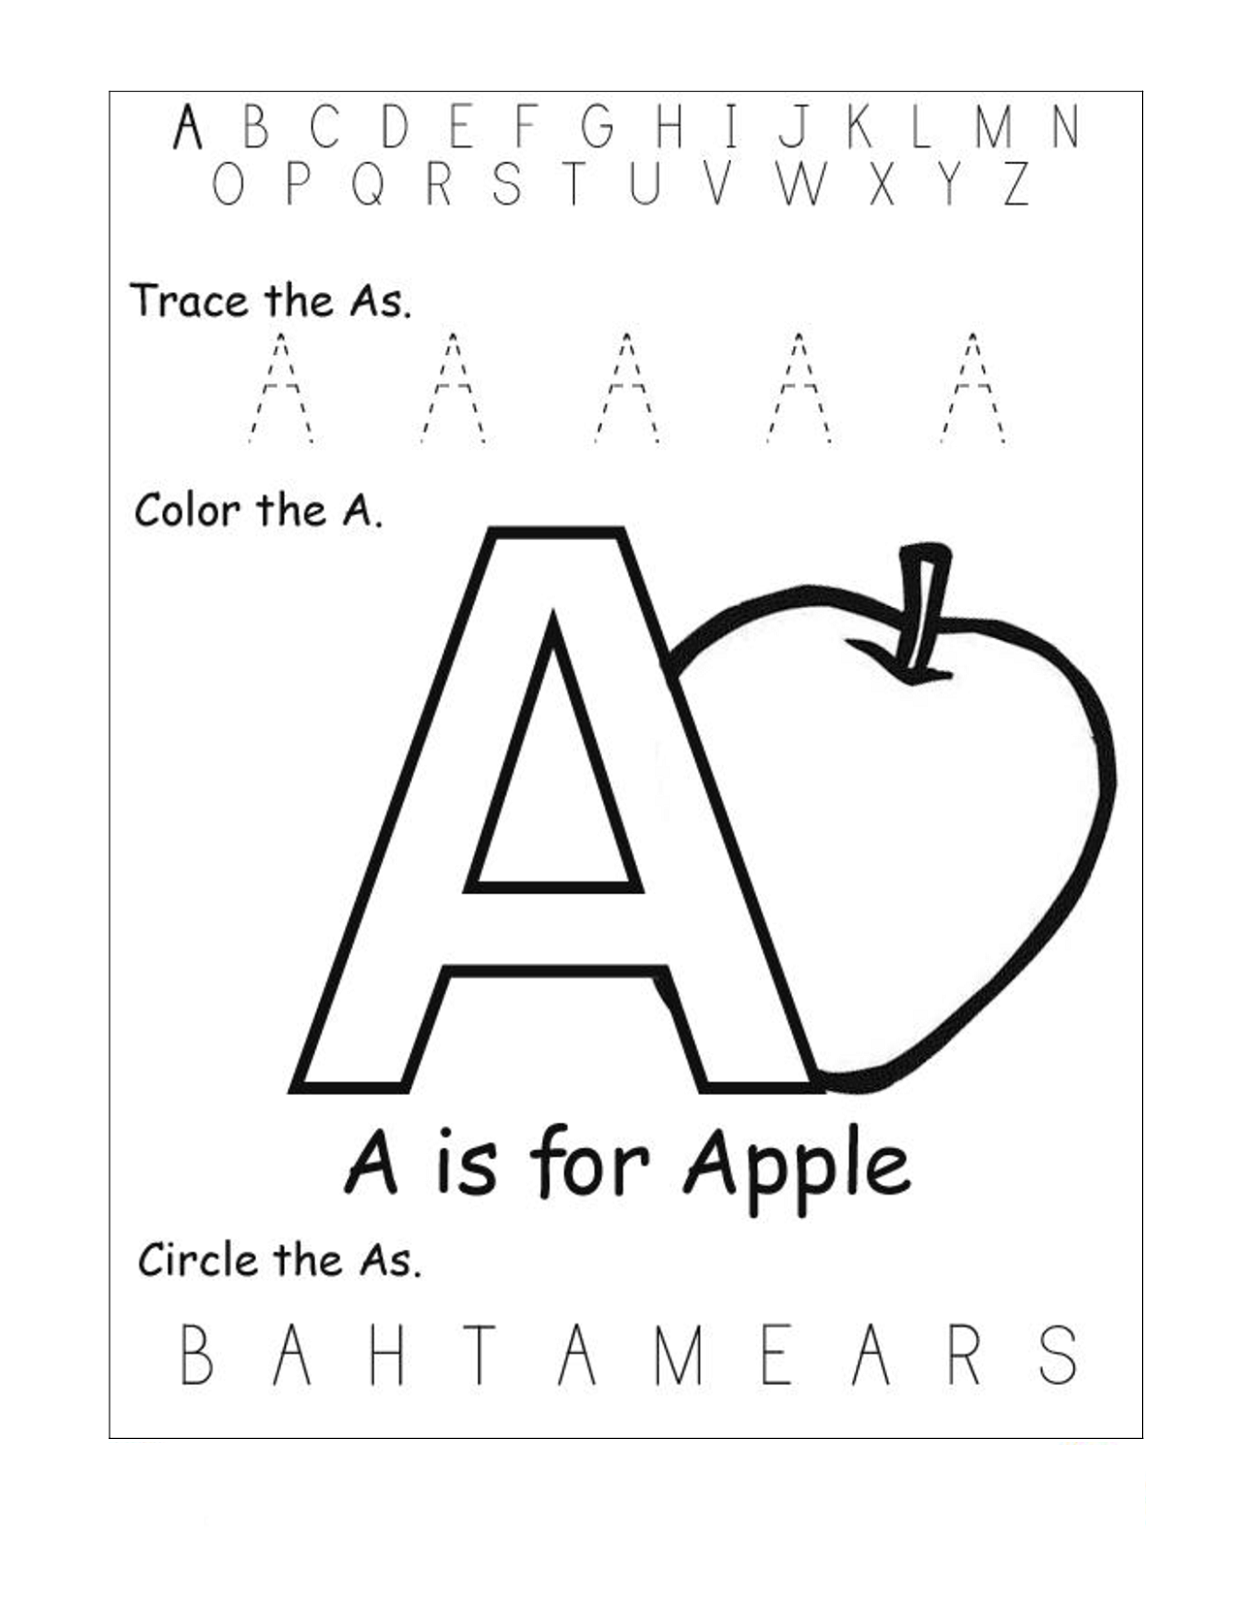 Worksheets Abc Worksheets For Pre-k free abc worksheets for pre k activity shelter letter a